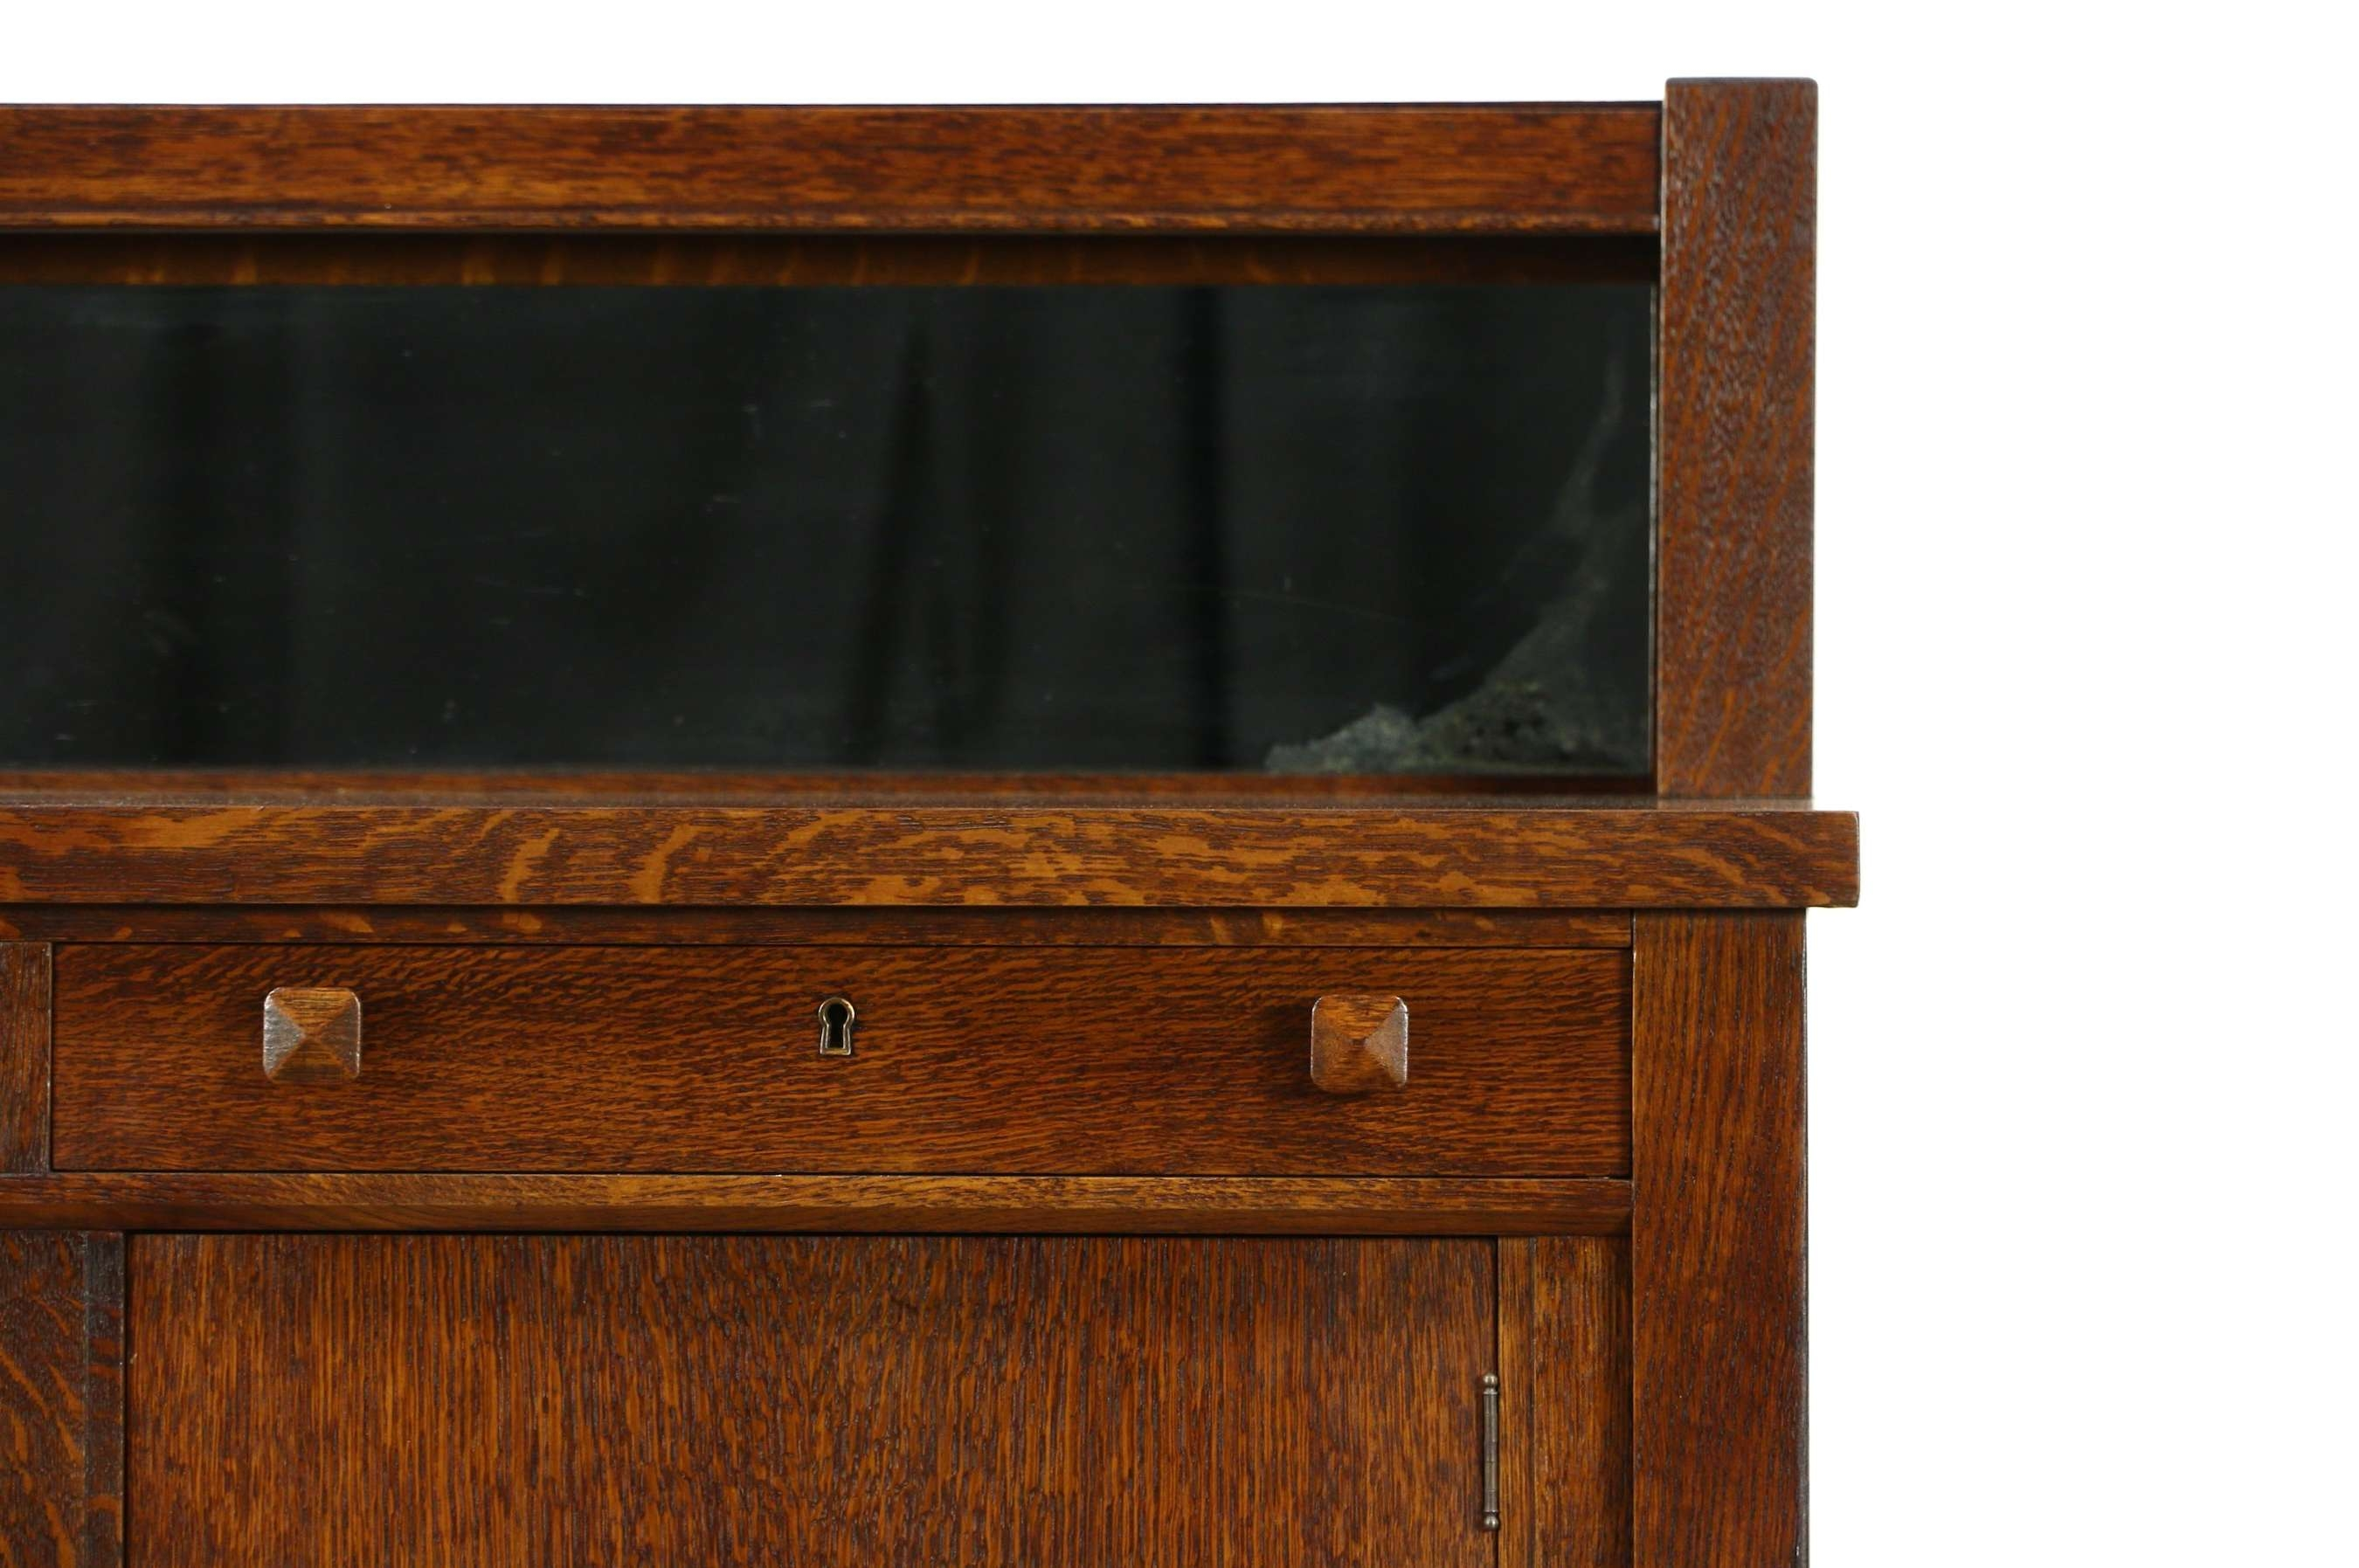 Sold – Arts & Crafts Mission Oak Antique Craftsman Sideboard Intended For Mission Sideboards (View 18 of 20)